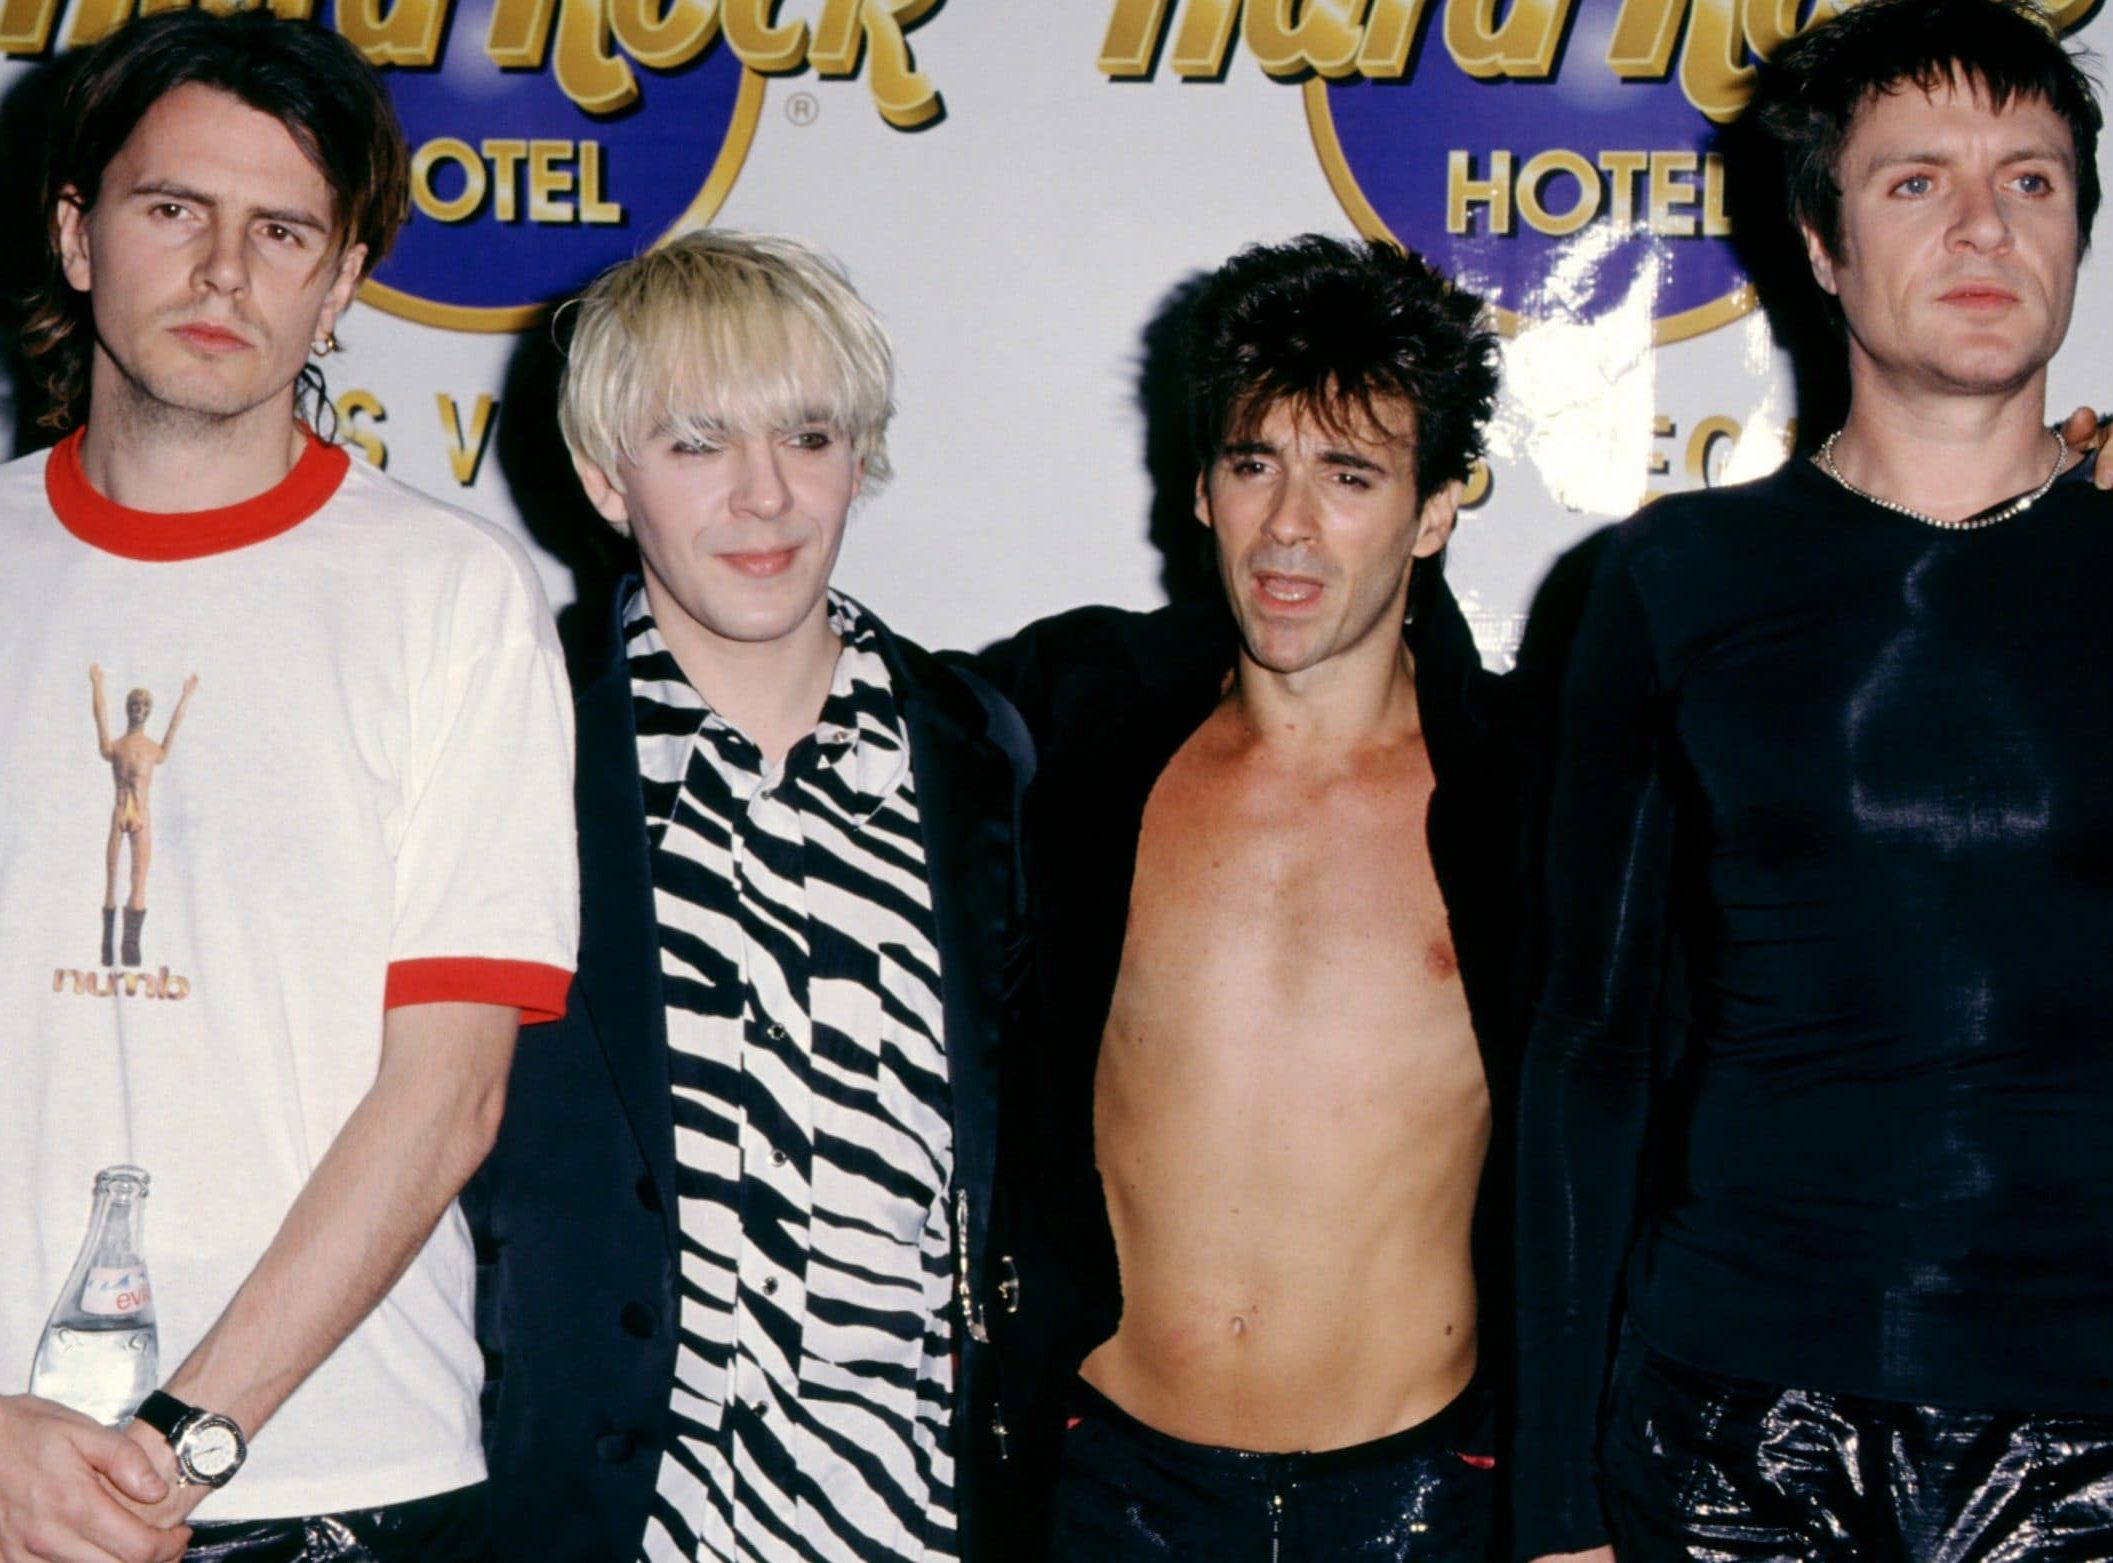 1 29 e1609409726354 20 Things You Never Knew About Duran Duran